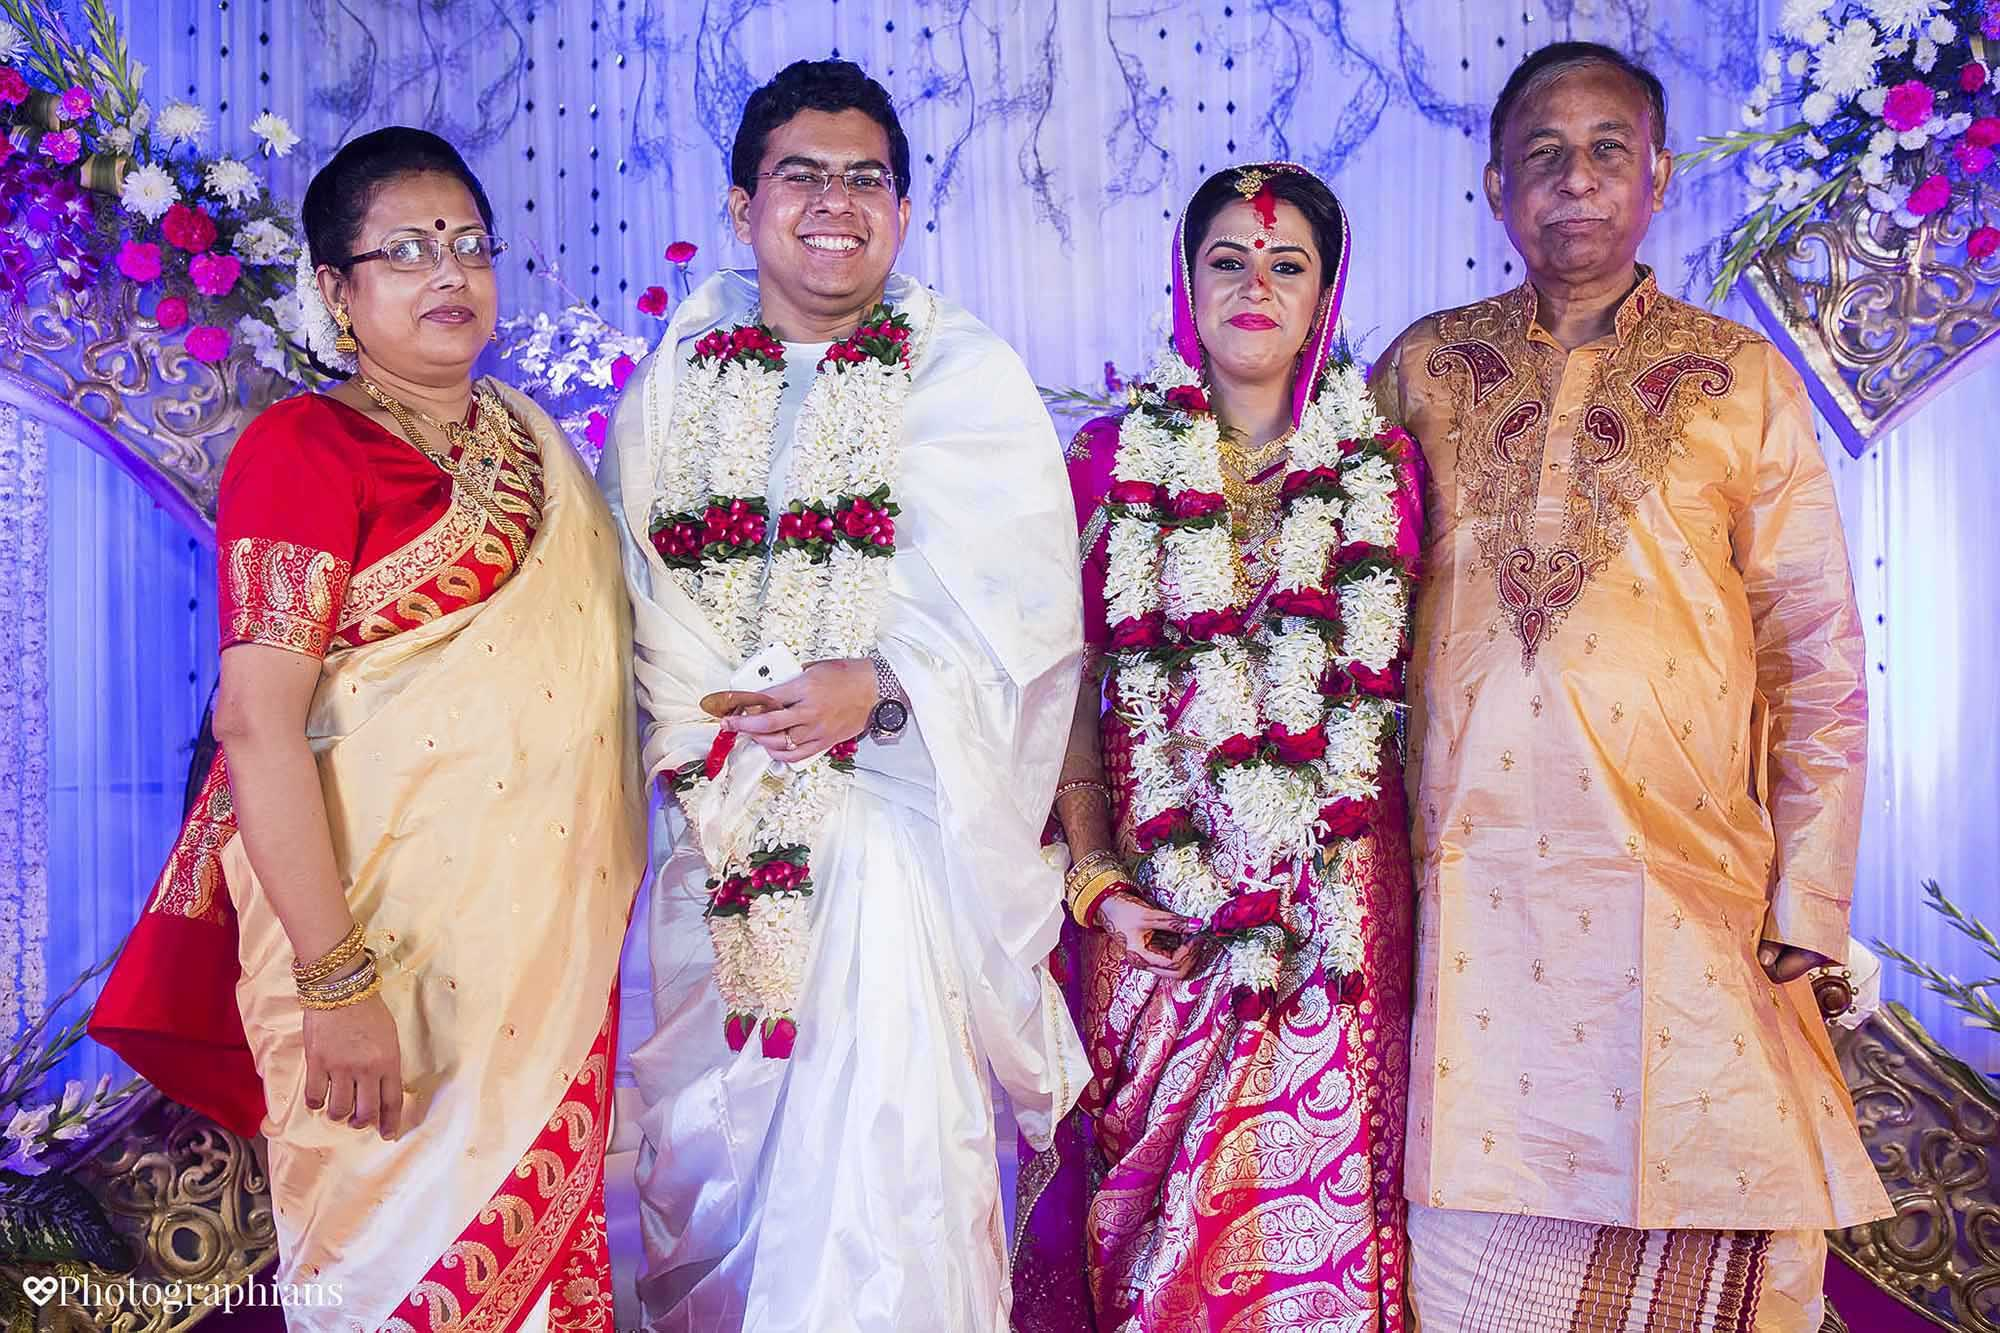 Bengali_Wedding_Photography_Kolkata_Photographians_160